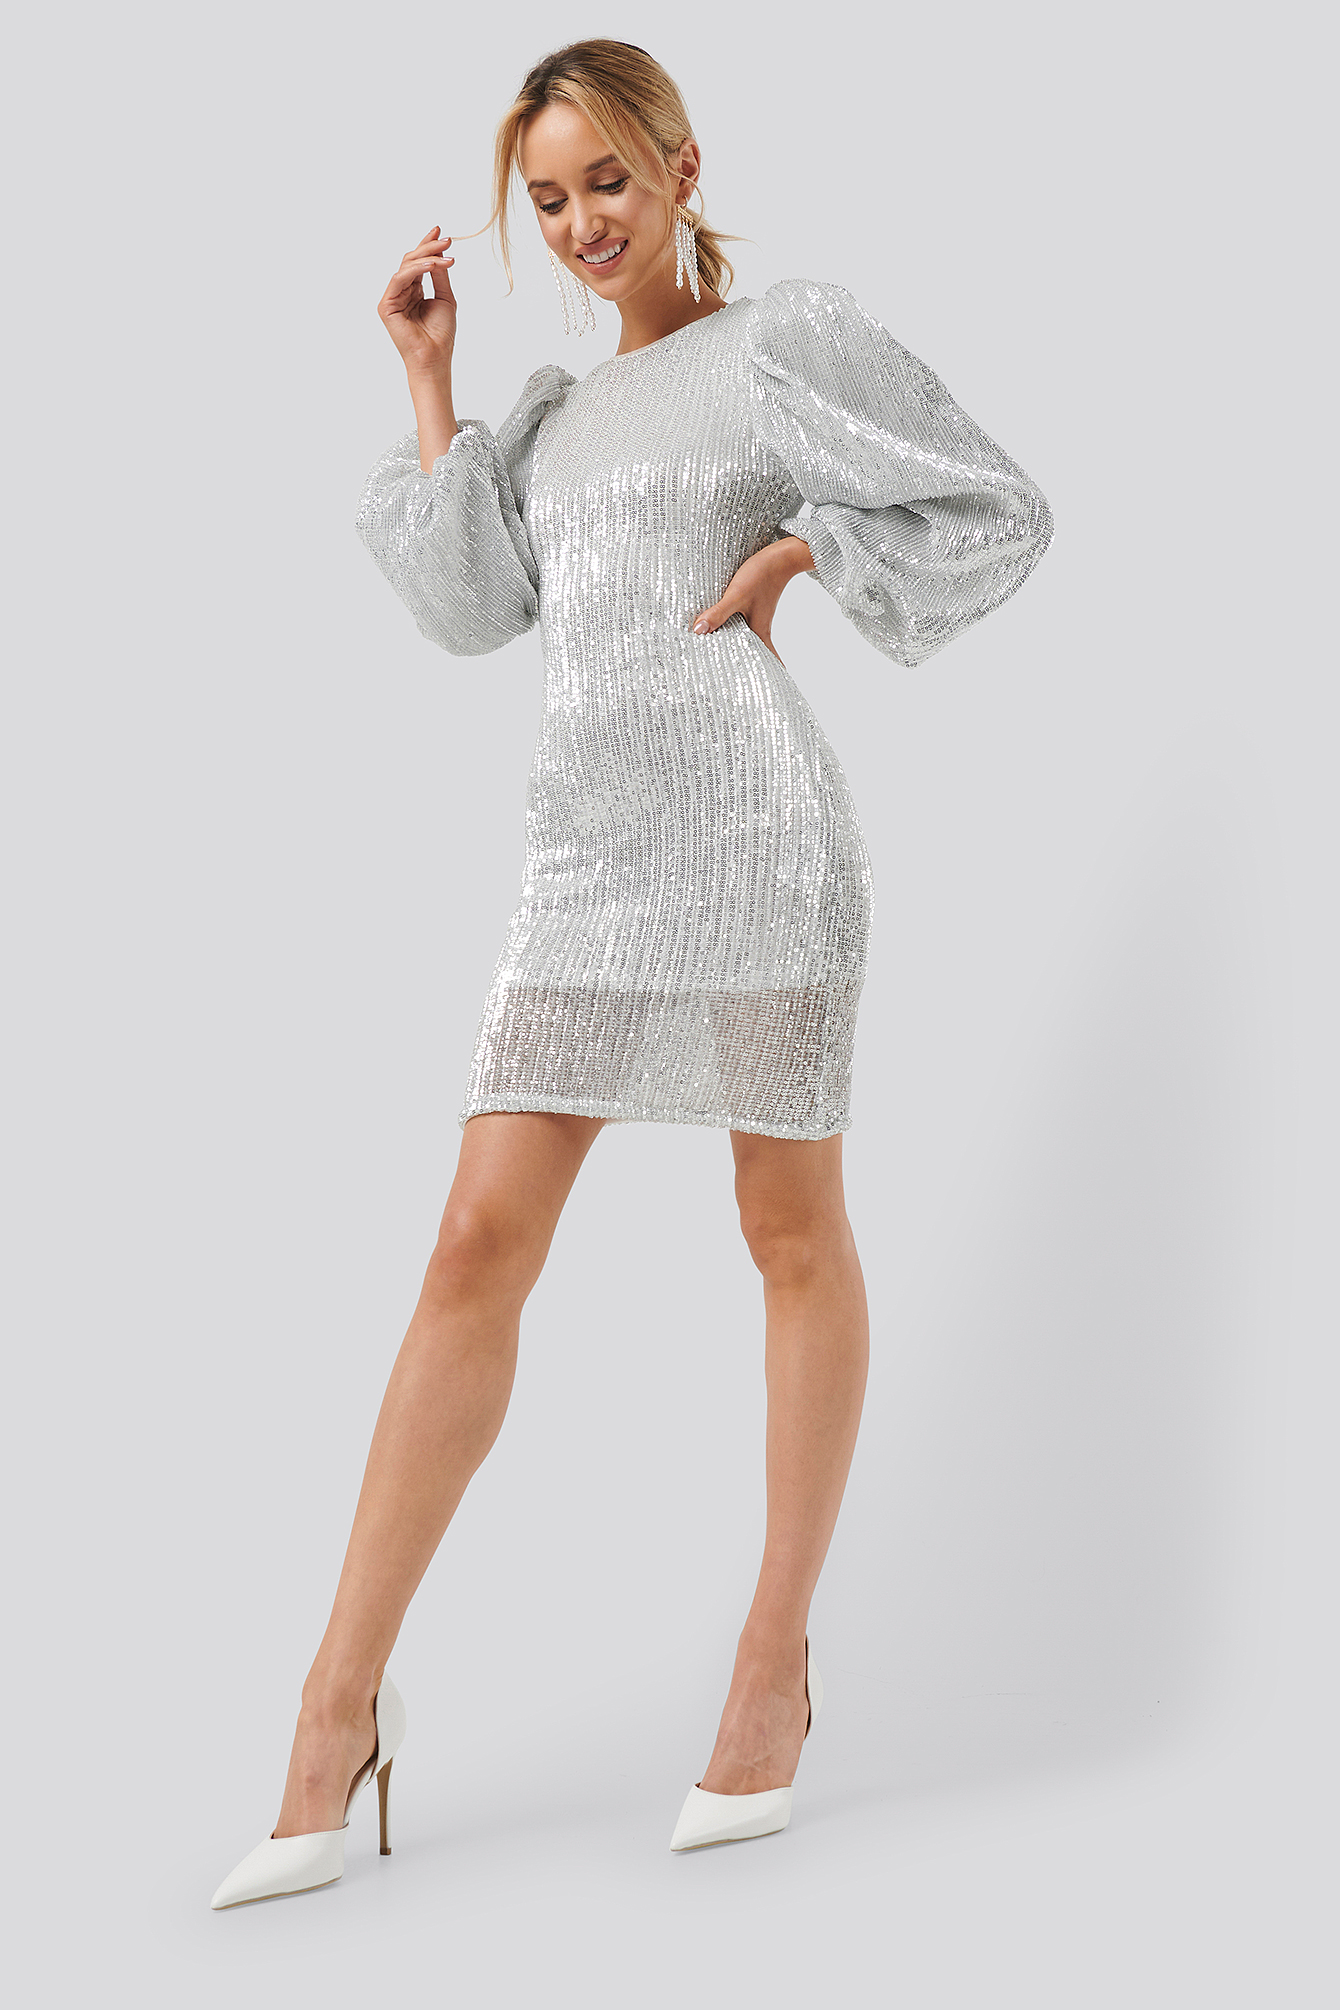 Silver Puff Sleeve Sequin Mini Dress